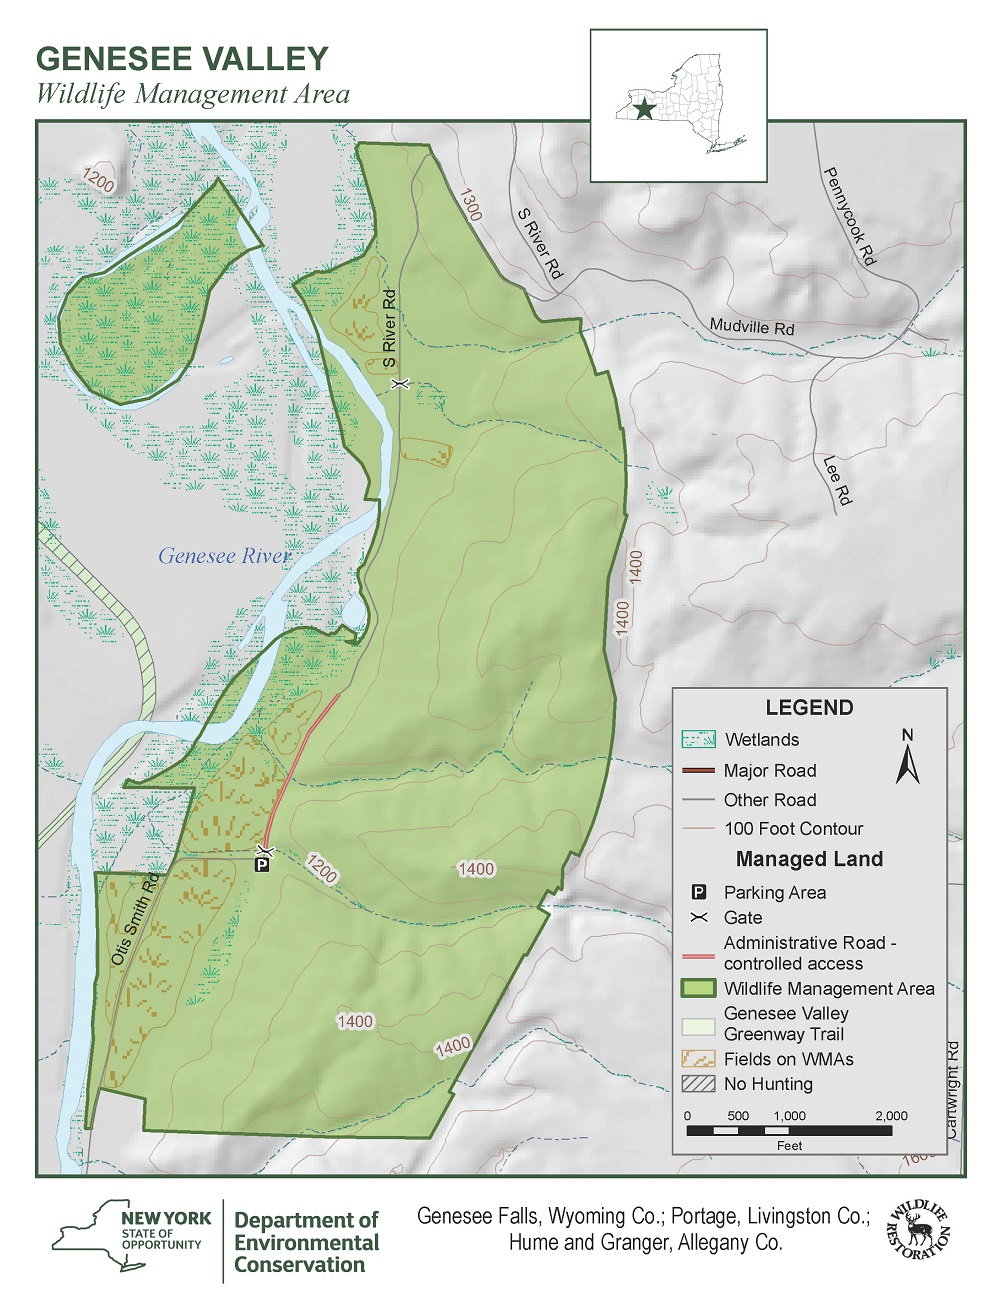 Map of Genesee Valley WMA